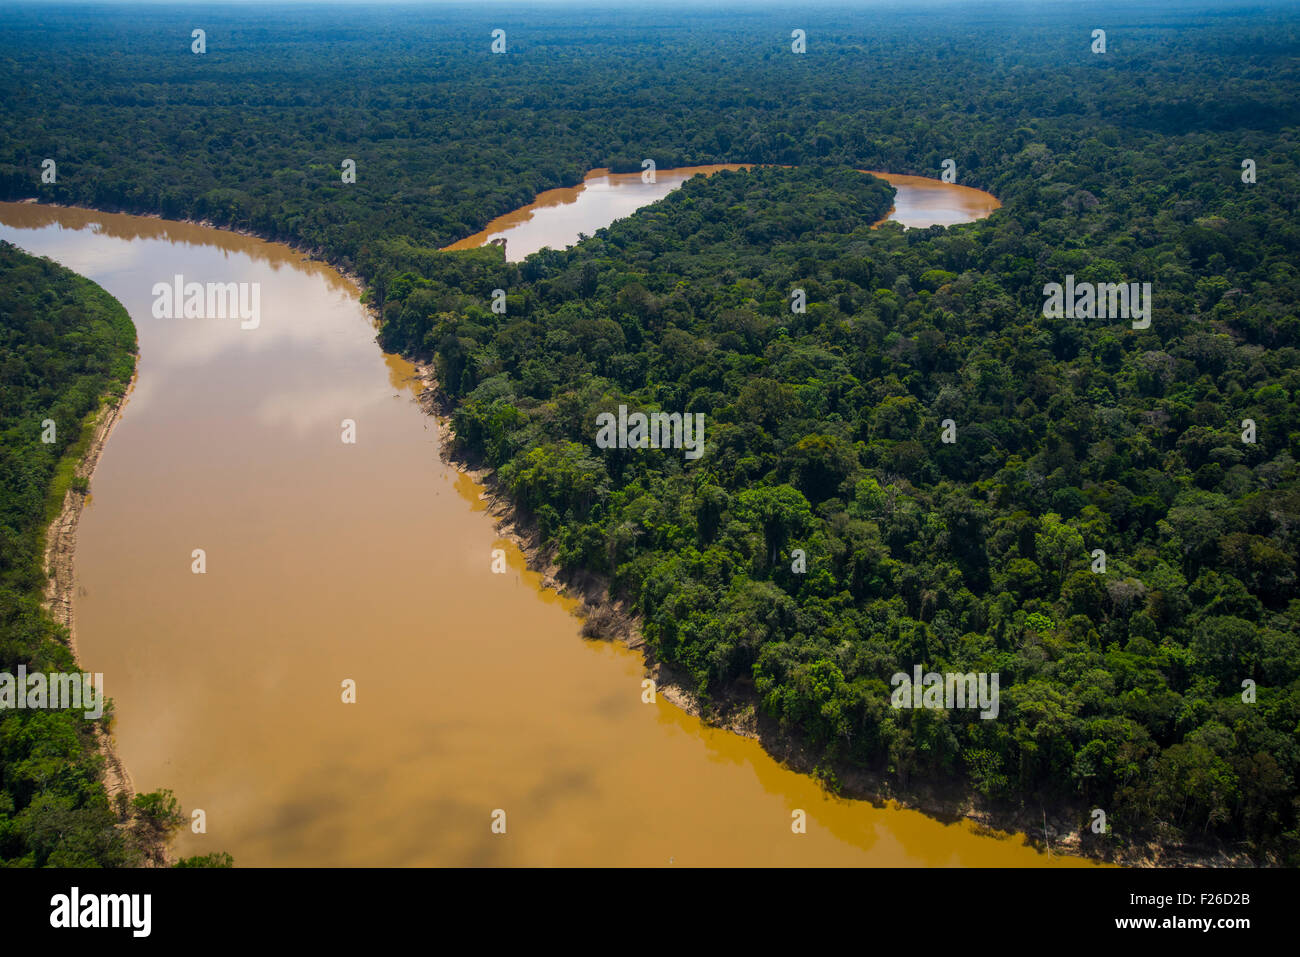 Rainforest aerial, Yavari River and oxbow lake and primary Amazonian forest, Brazil on left bank, Peru on right - Stock Image